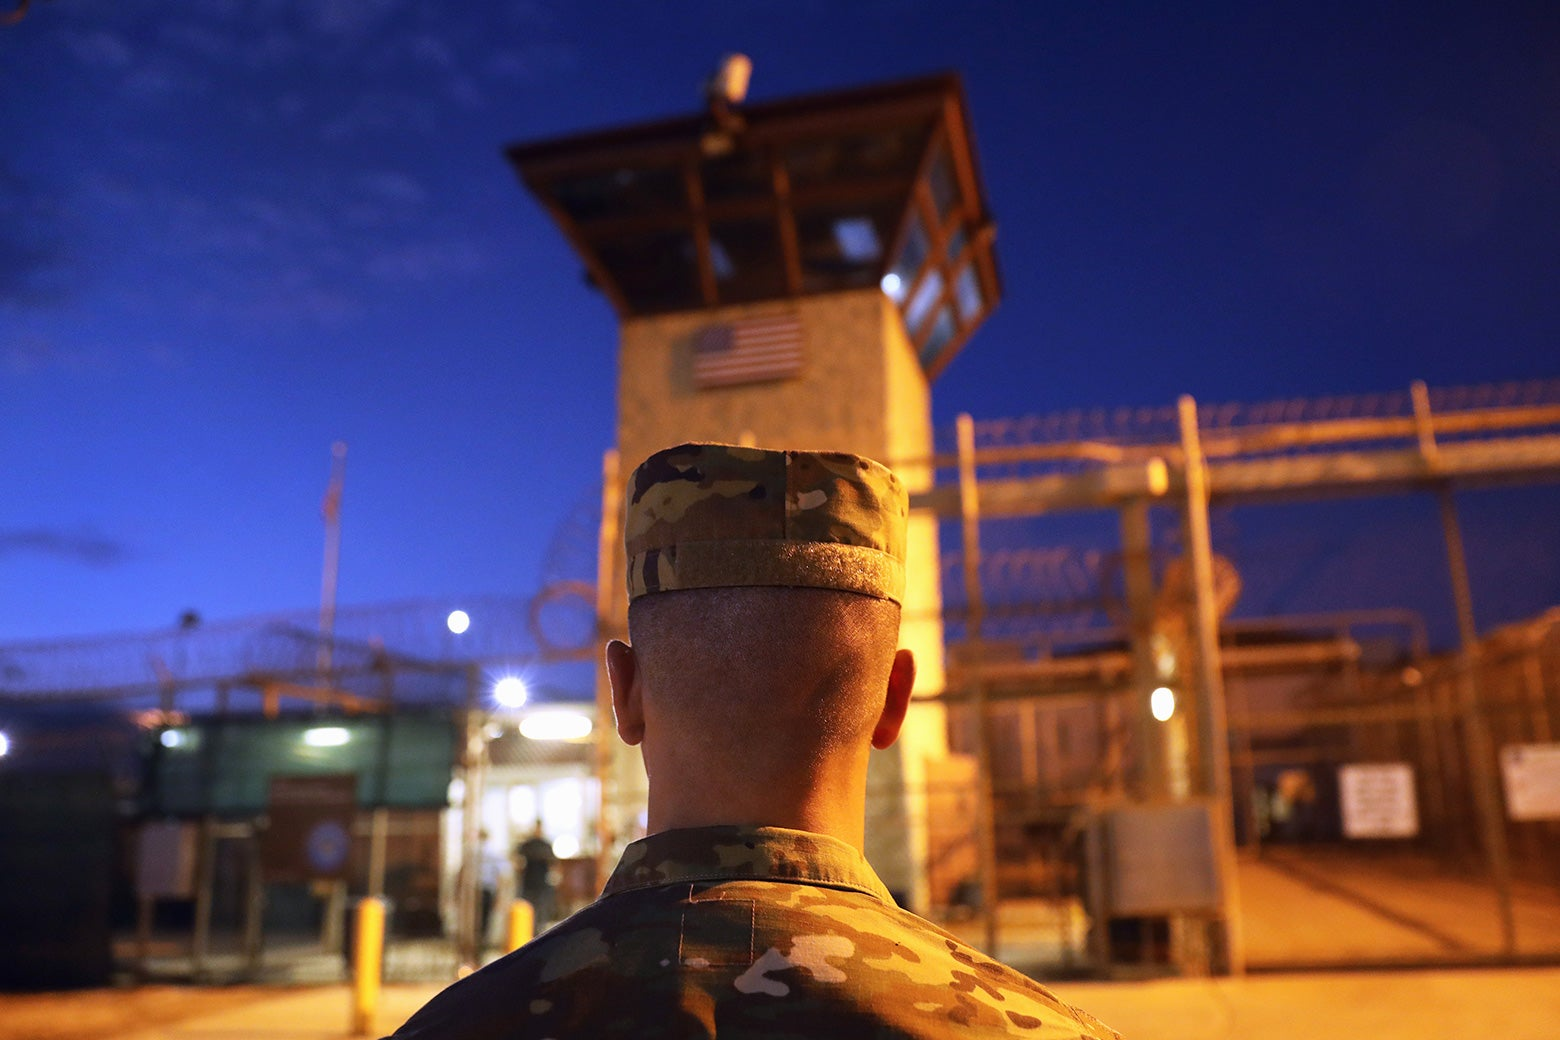 A U.S. Army soldier stands outside the entrance of the detention center at the U.S. Naval Station at Guantanamo Bay, Cuba, on Oct. 22, 2016.